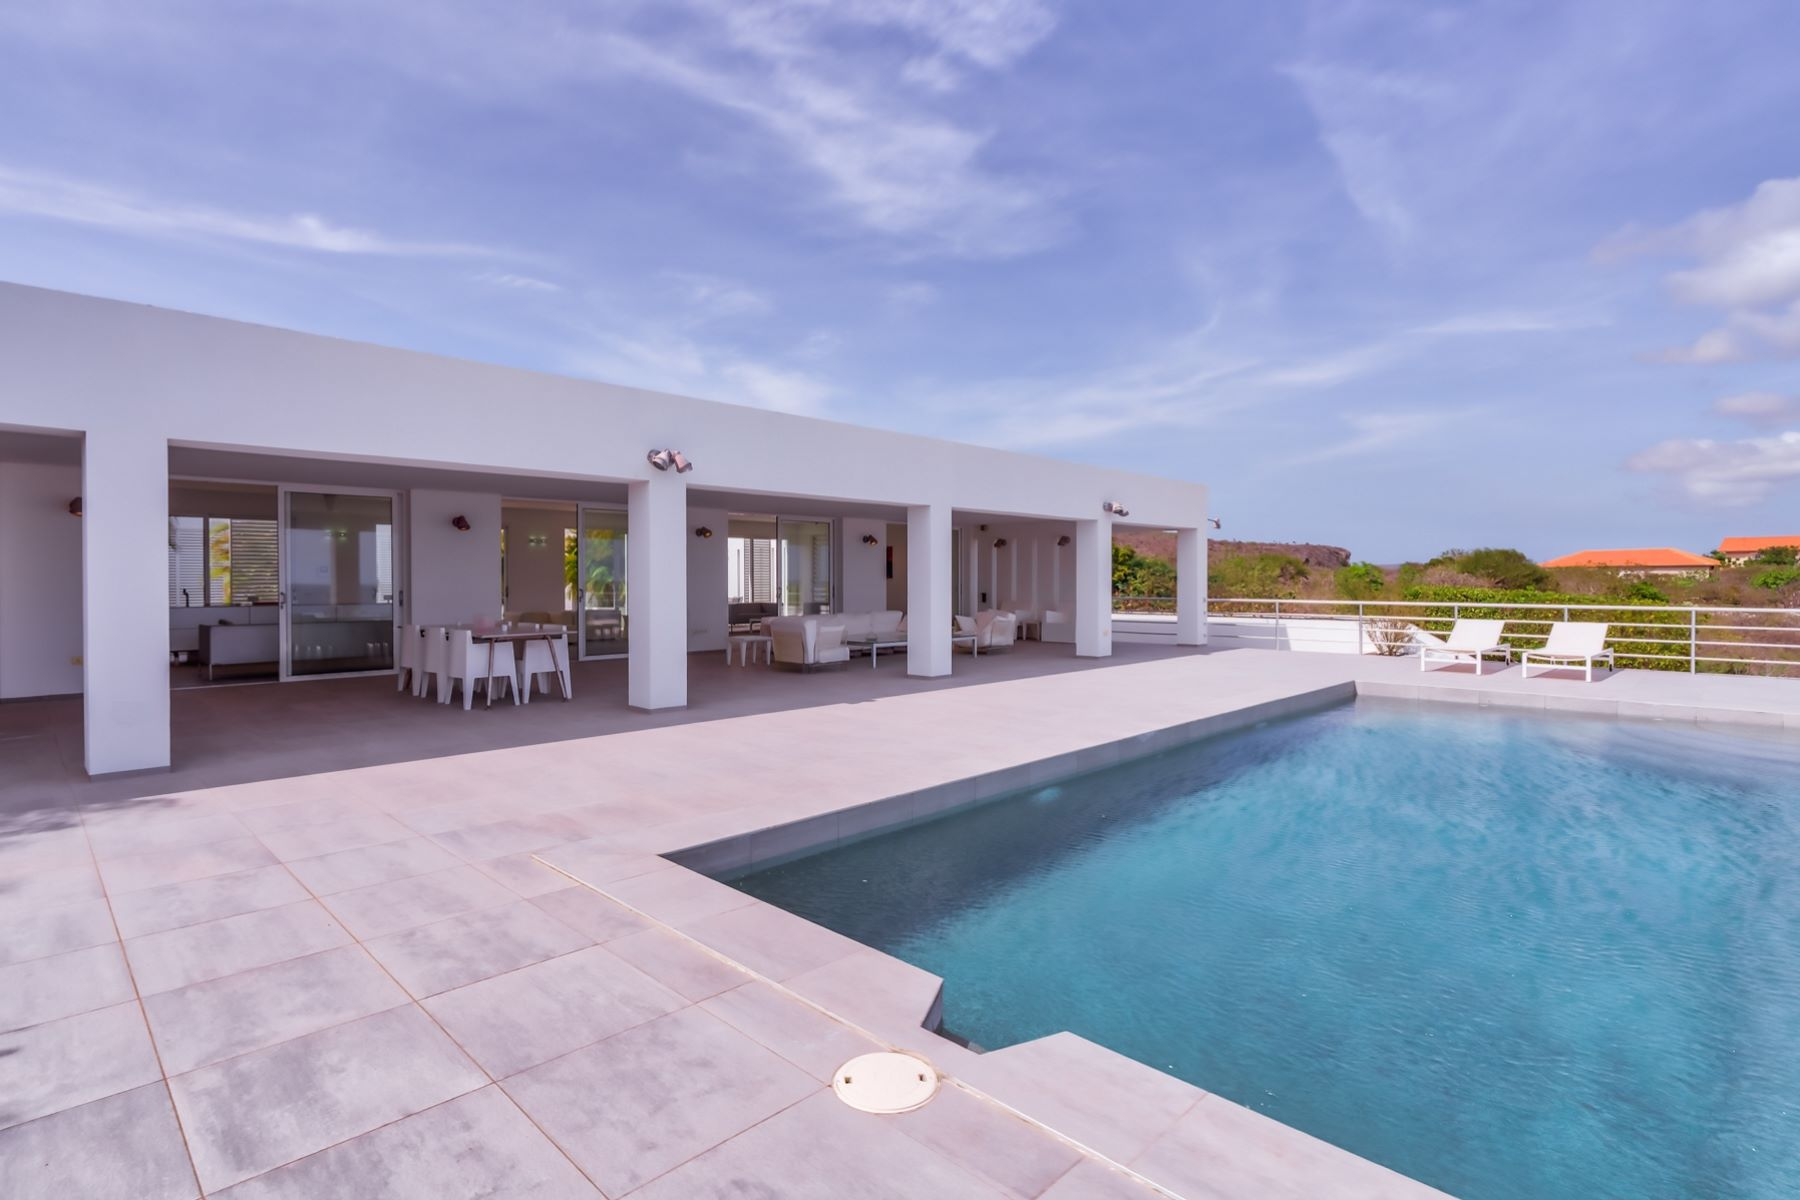 Single Family Homes for Sale at Rif St. Marie Contemporary Villa 308 Willemstad, Curacao